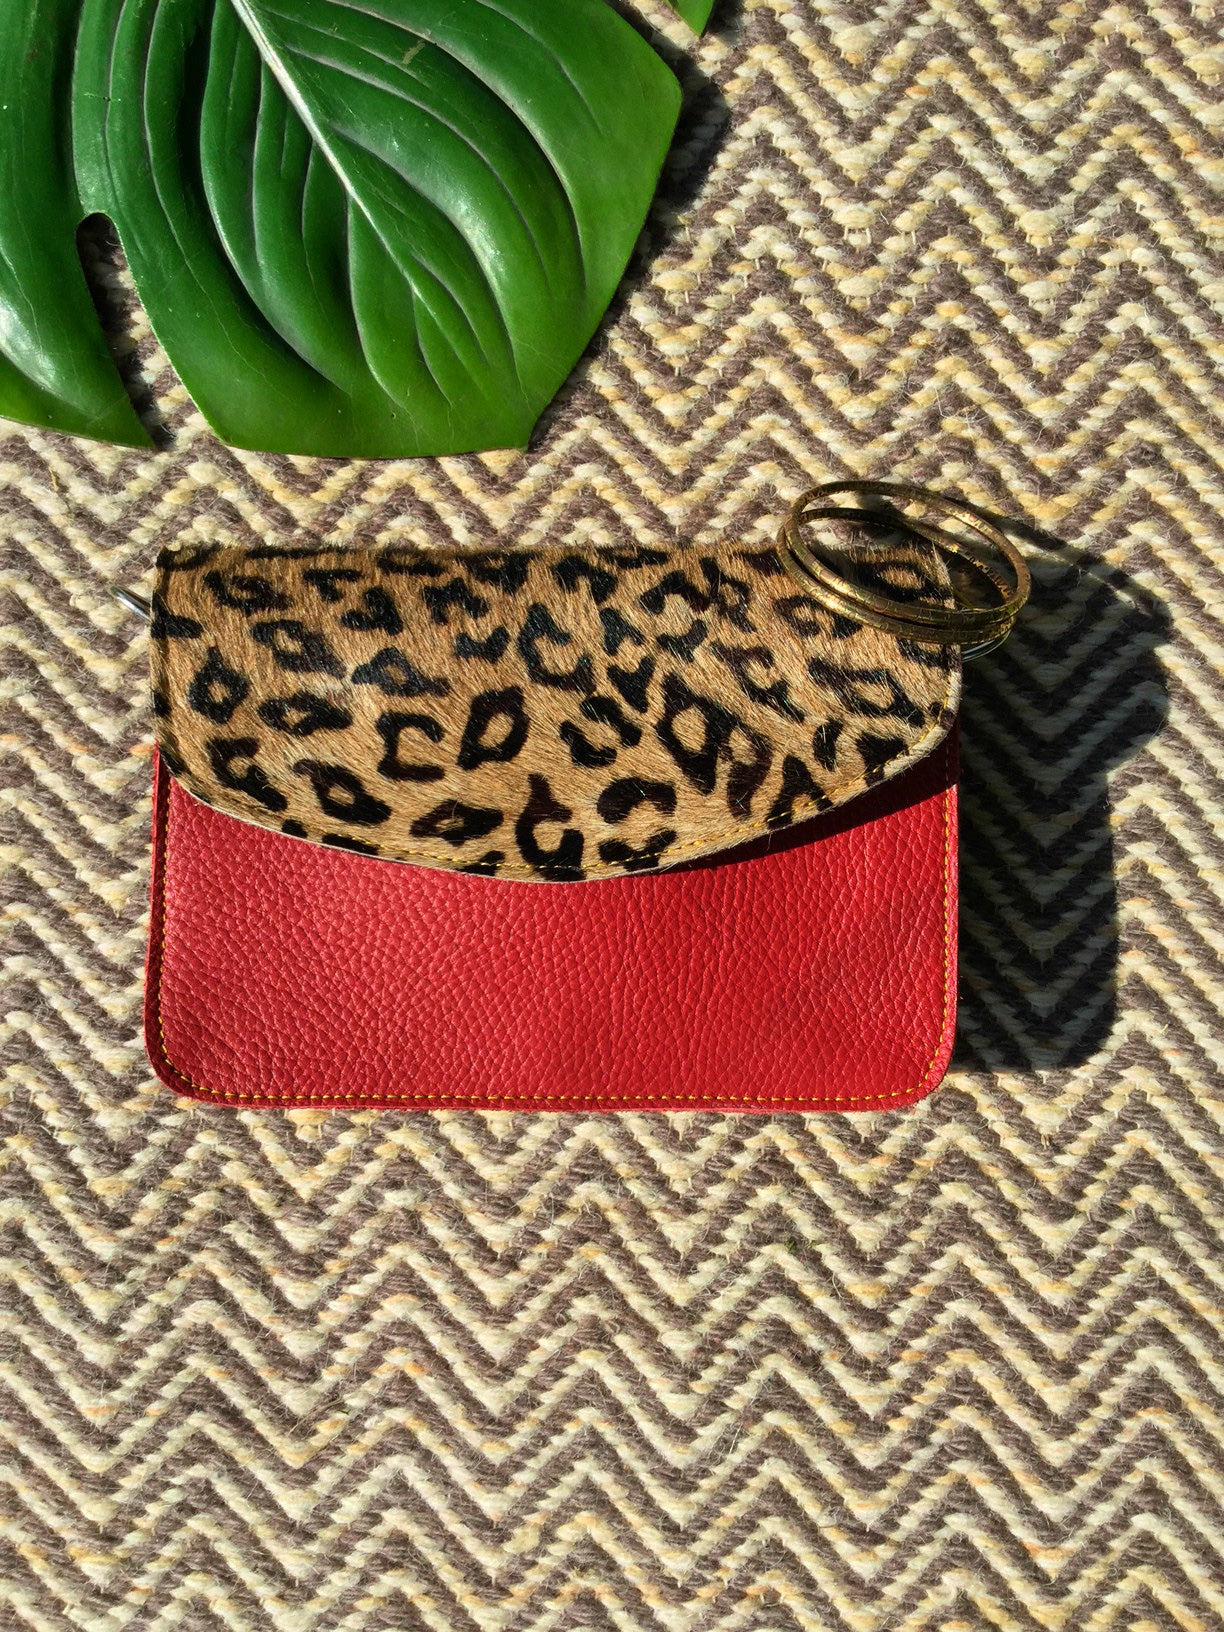 sketch london animal print envelope shape cross body bag red leopard print leather bag ethical sustainable